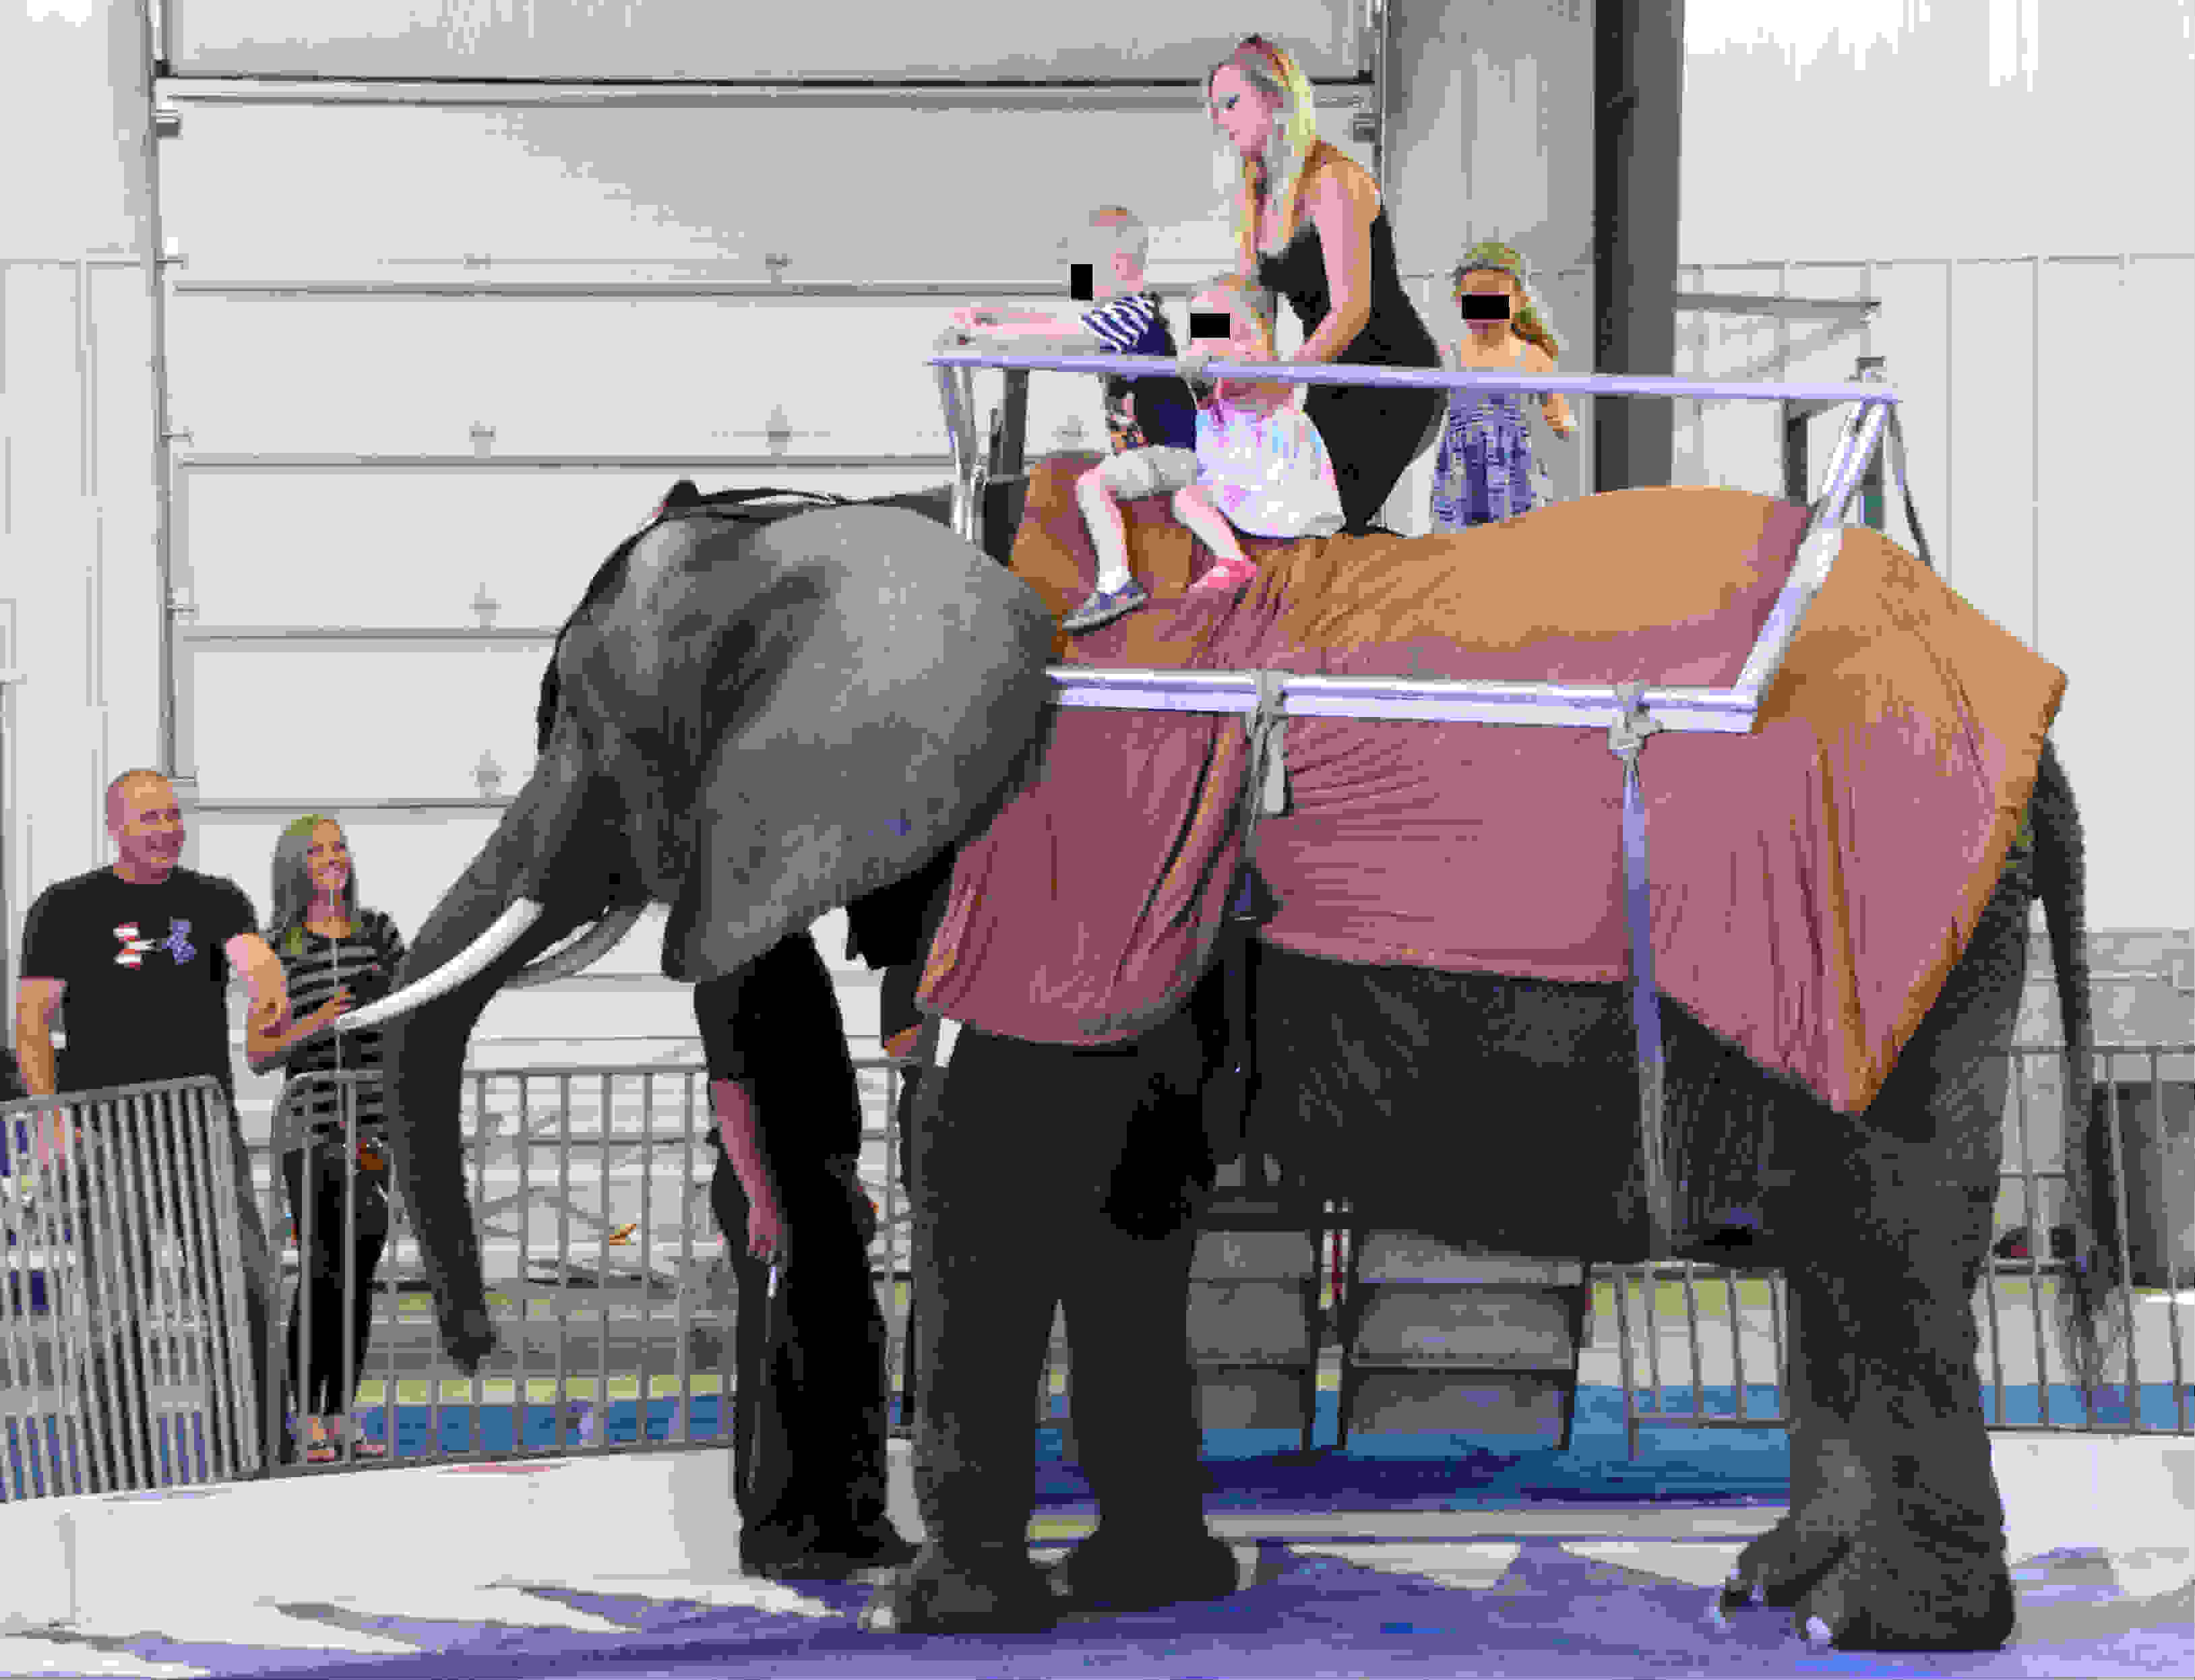 Nosey giving rides, Davenport, Iowa, May 22, 2016 - photo courtesy Kim (Born Torun)